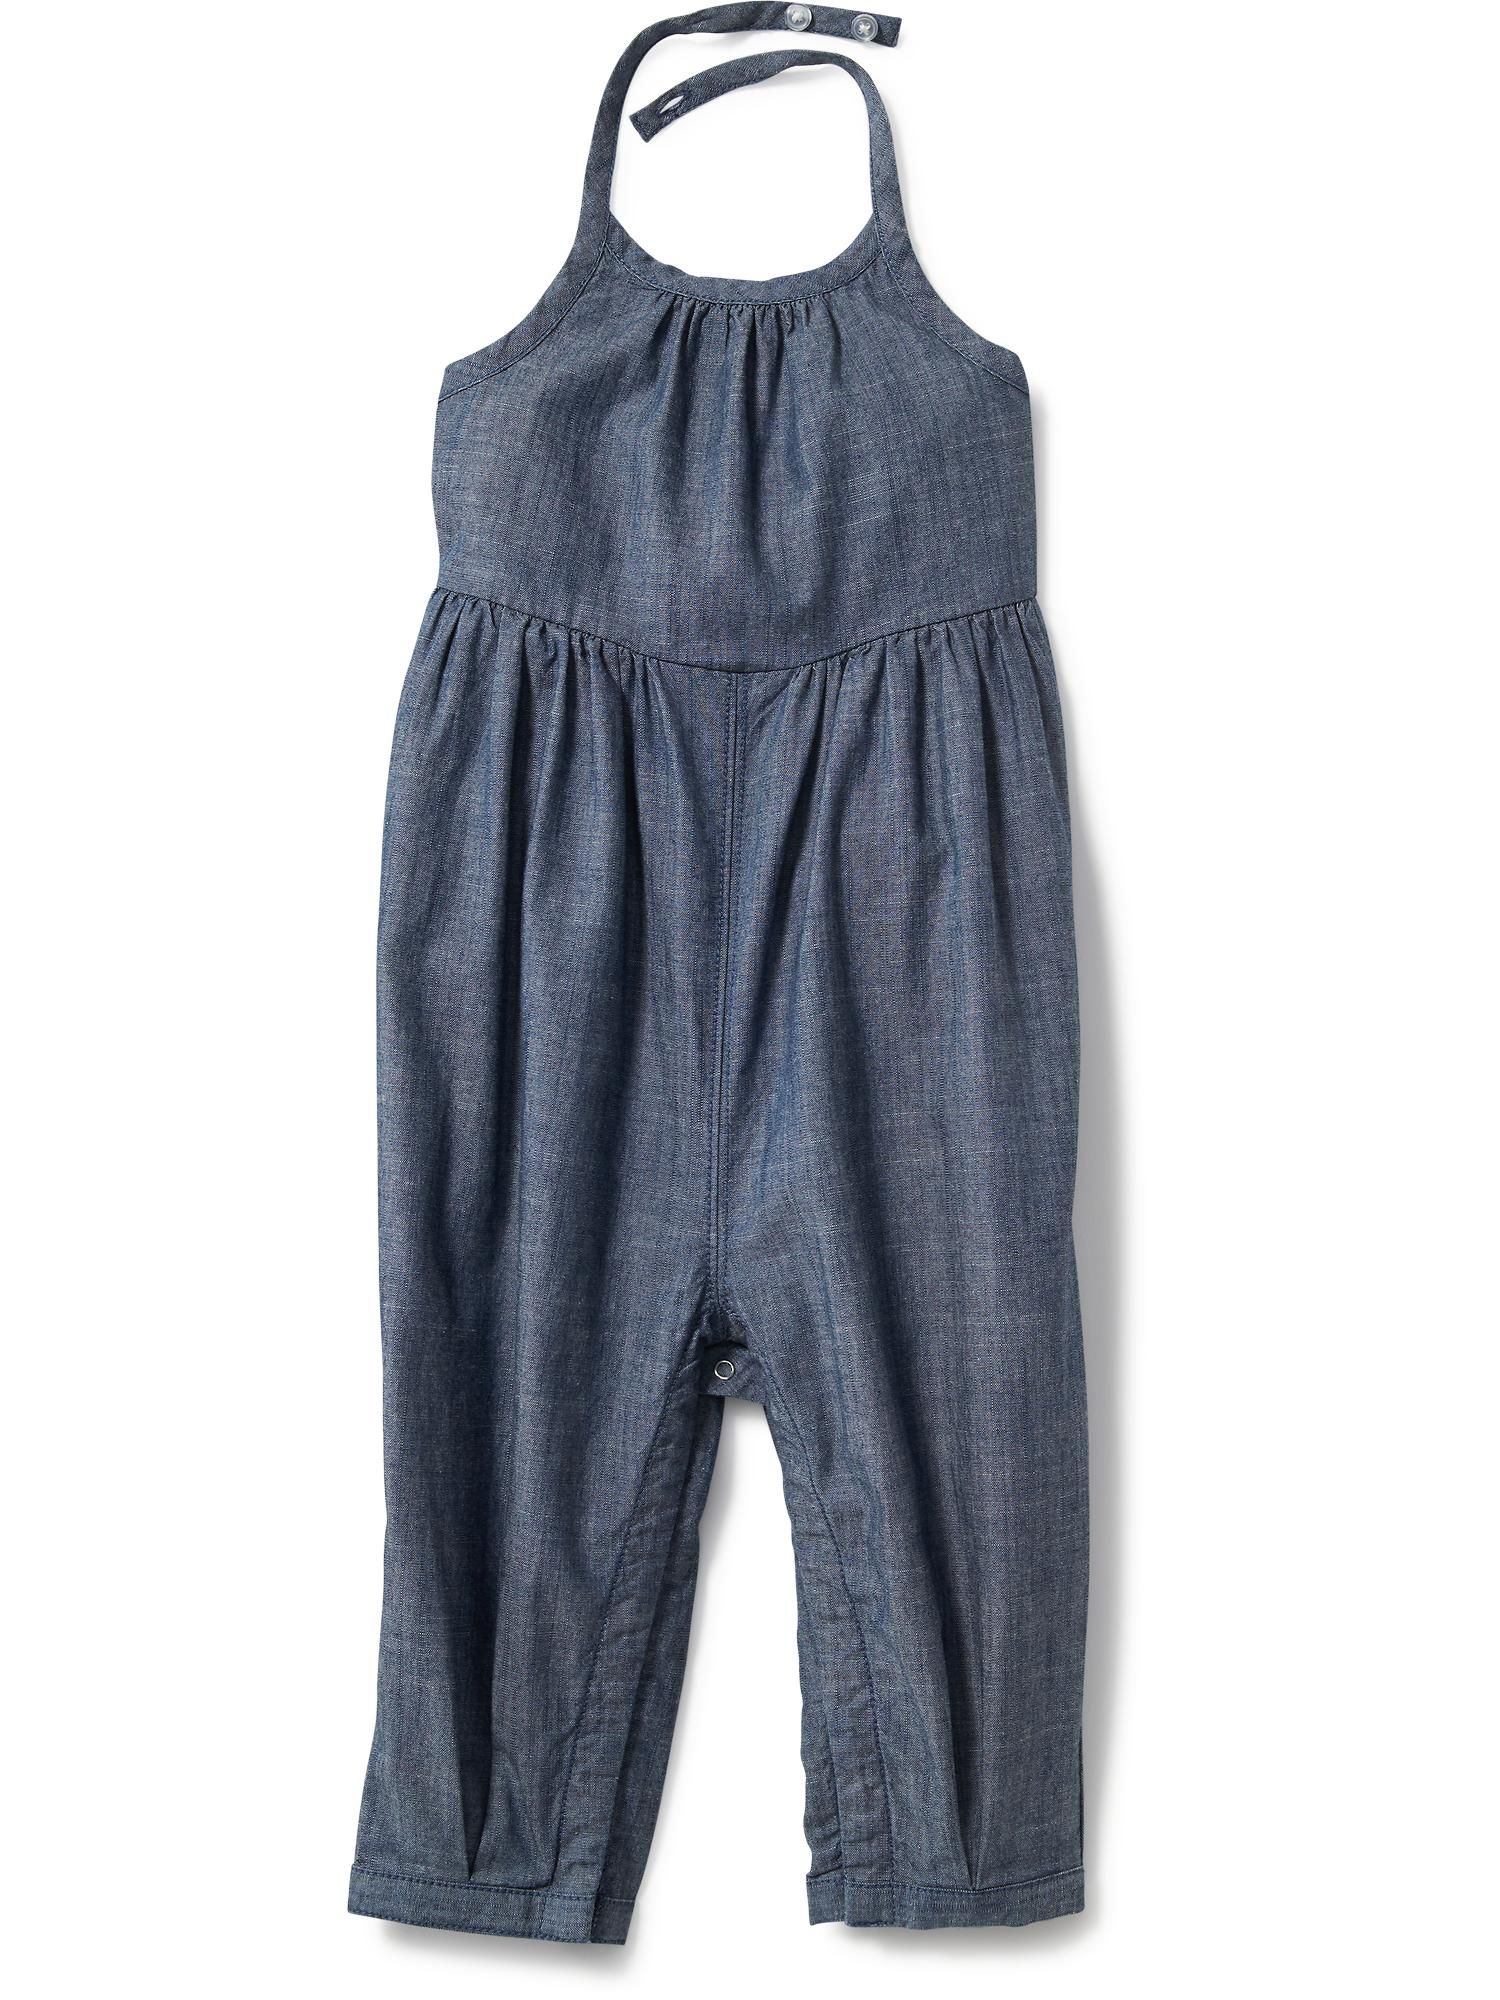 Chambray Halter Top Romper for Baby Old Navy